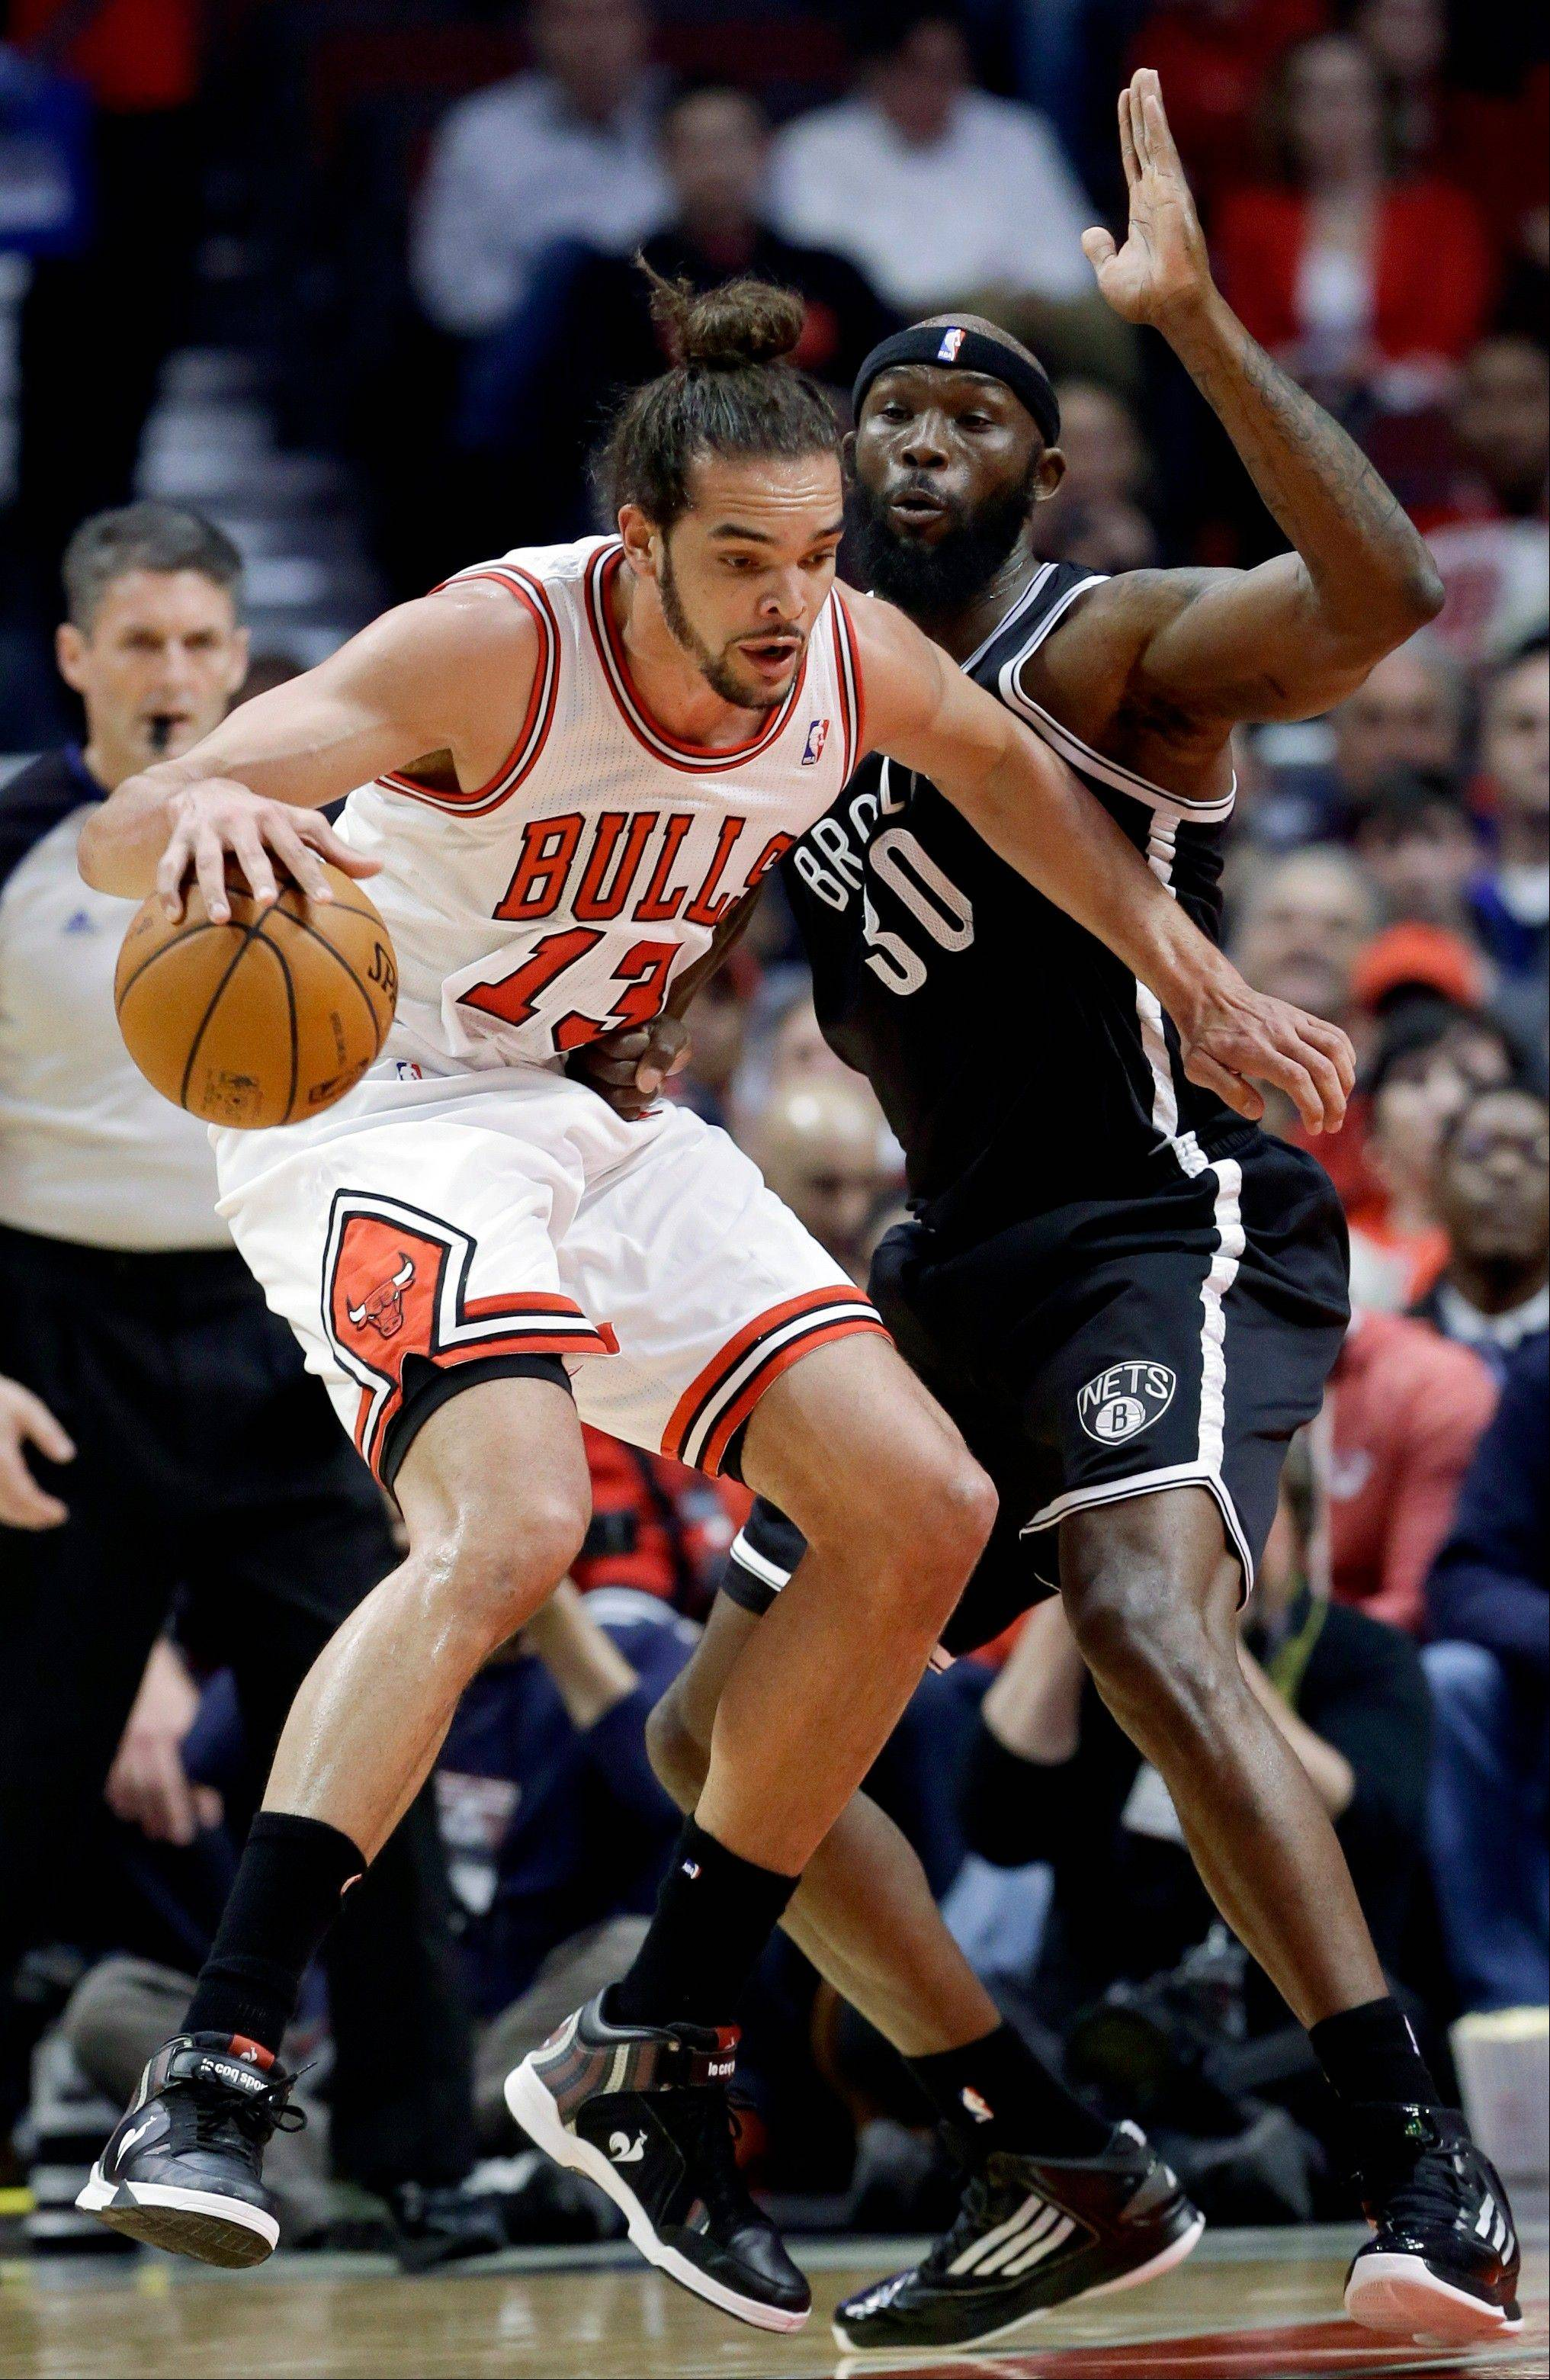 Chicago Bulls center Joakim Noah, left, drives against Brooklyn Nets forward Reggie Evans during the first half in Game 6 of their first-round NBA basketball playoff series in Chicago, Thursday, May 2, 2013.